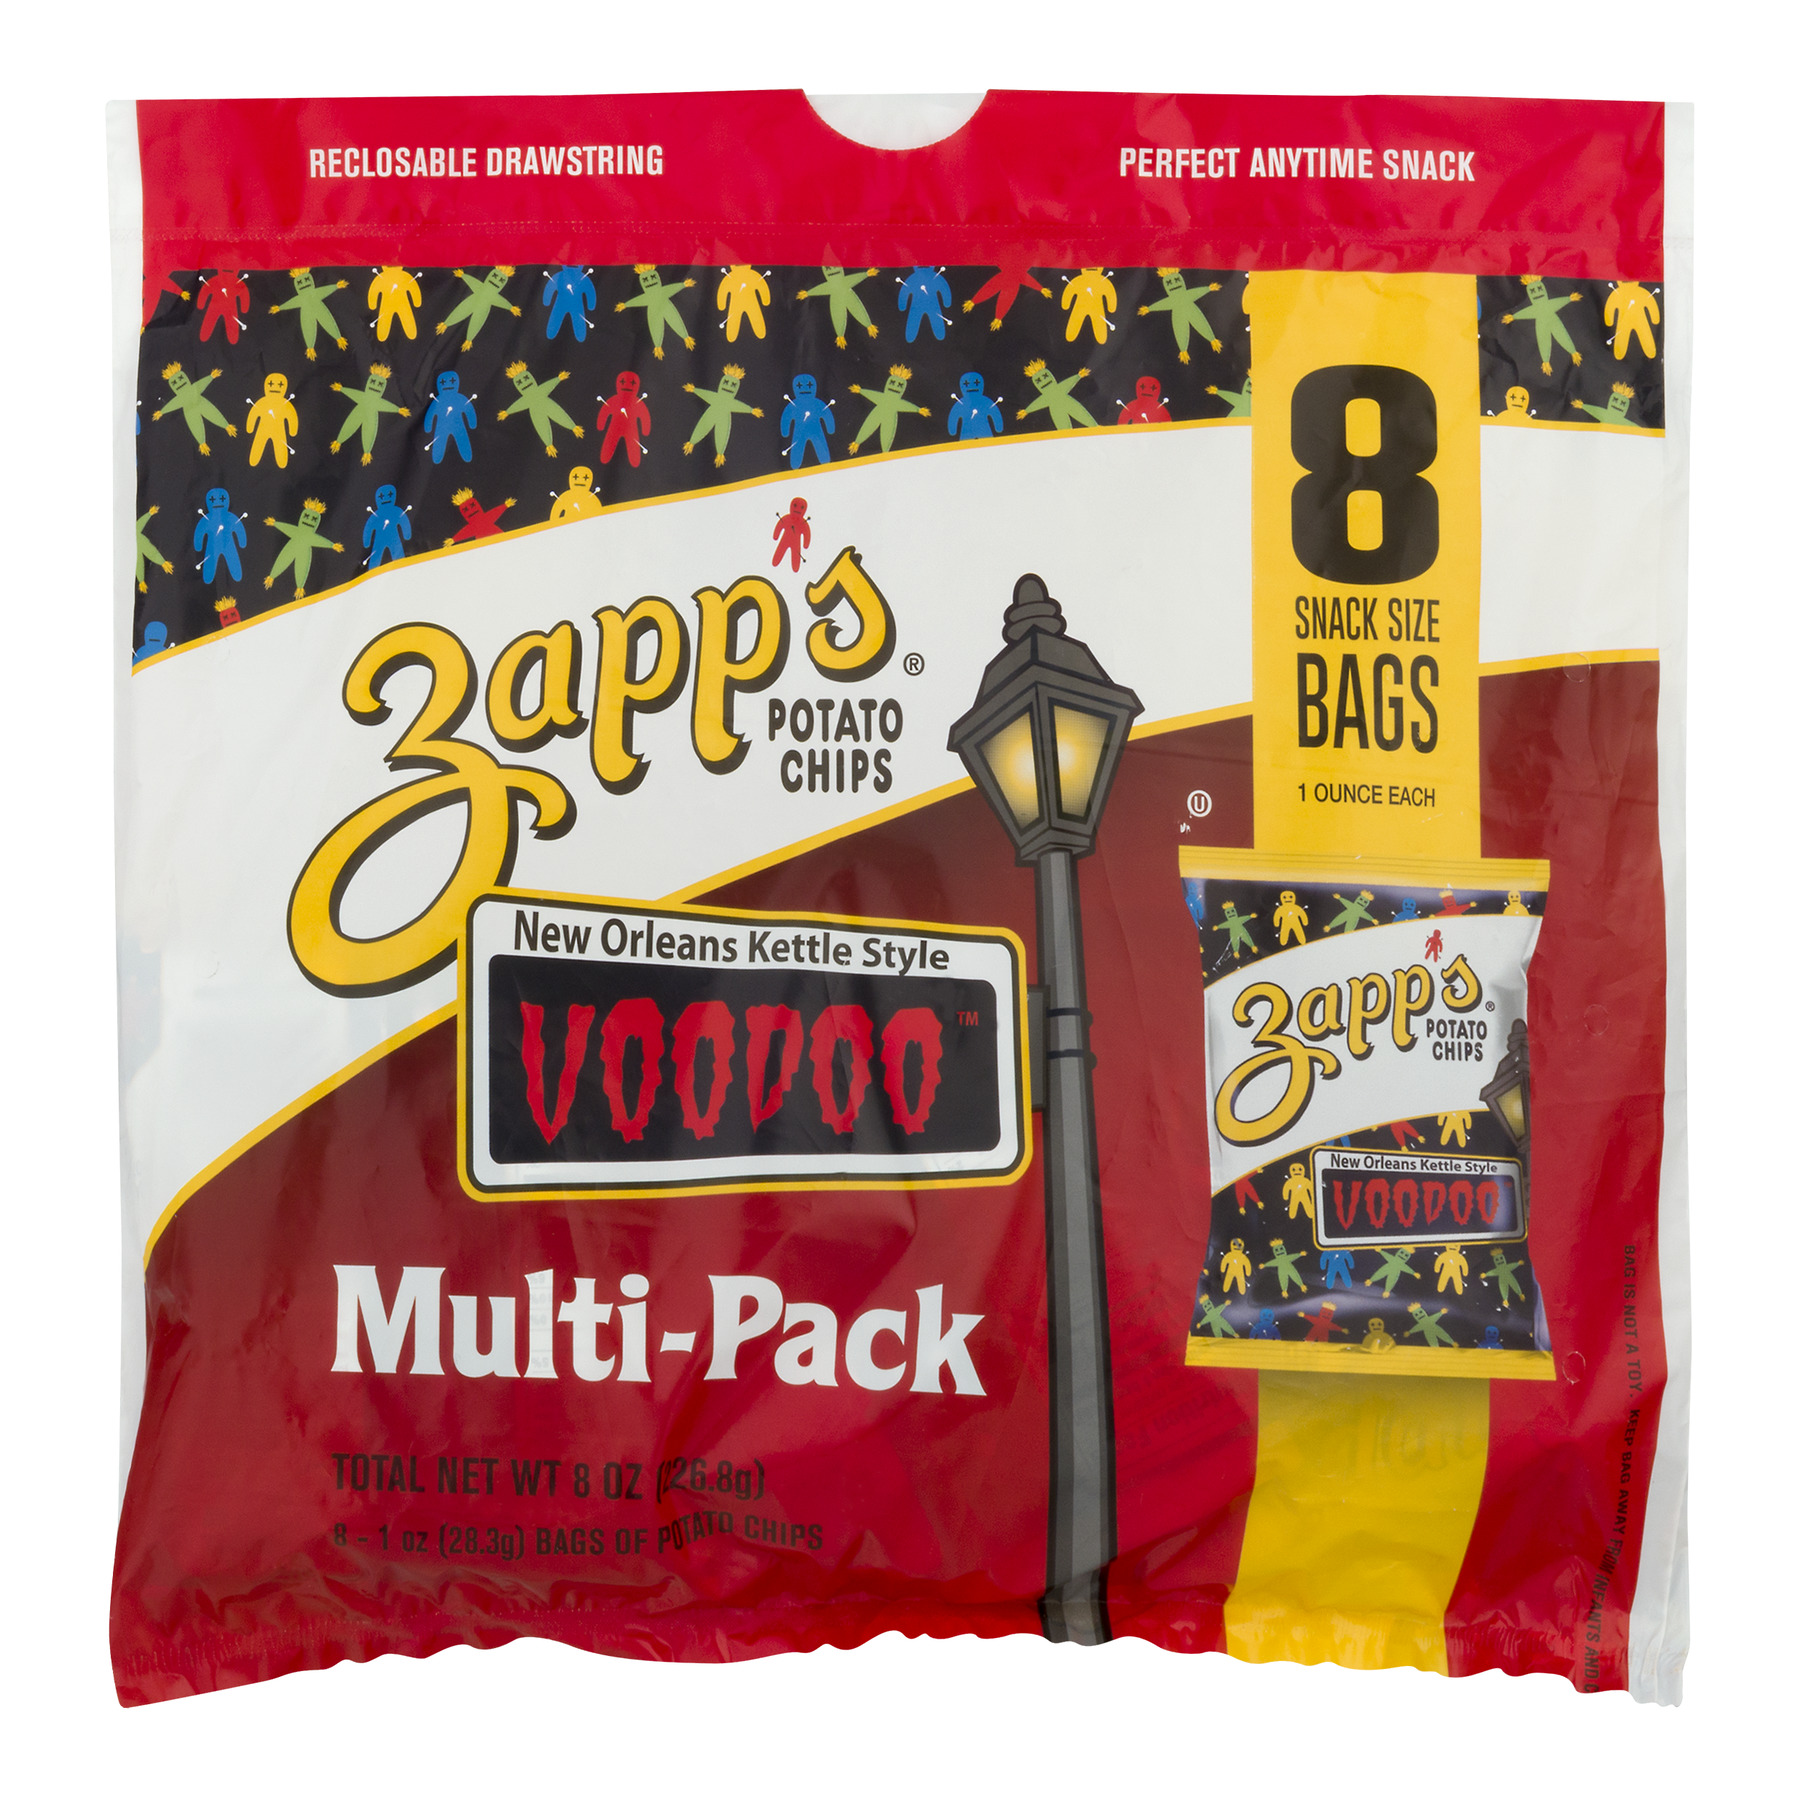 Zapp's New Orleans Kettle Style Potato Chips, Voodoo Multipack Sack, 8 Ct